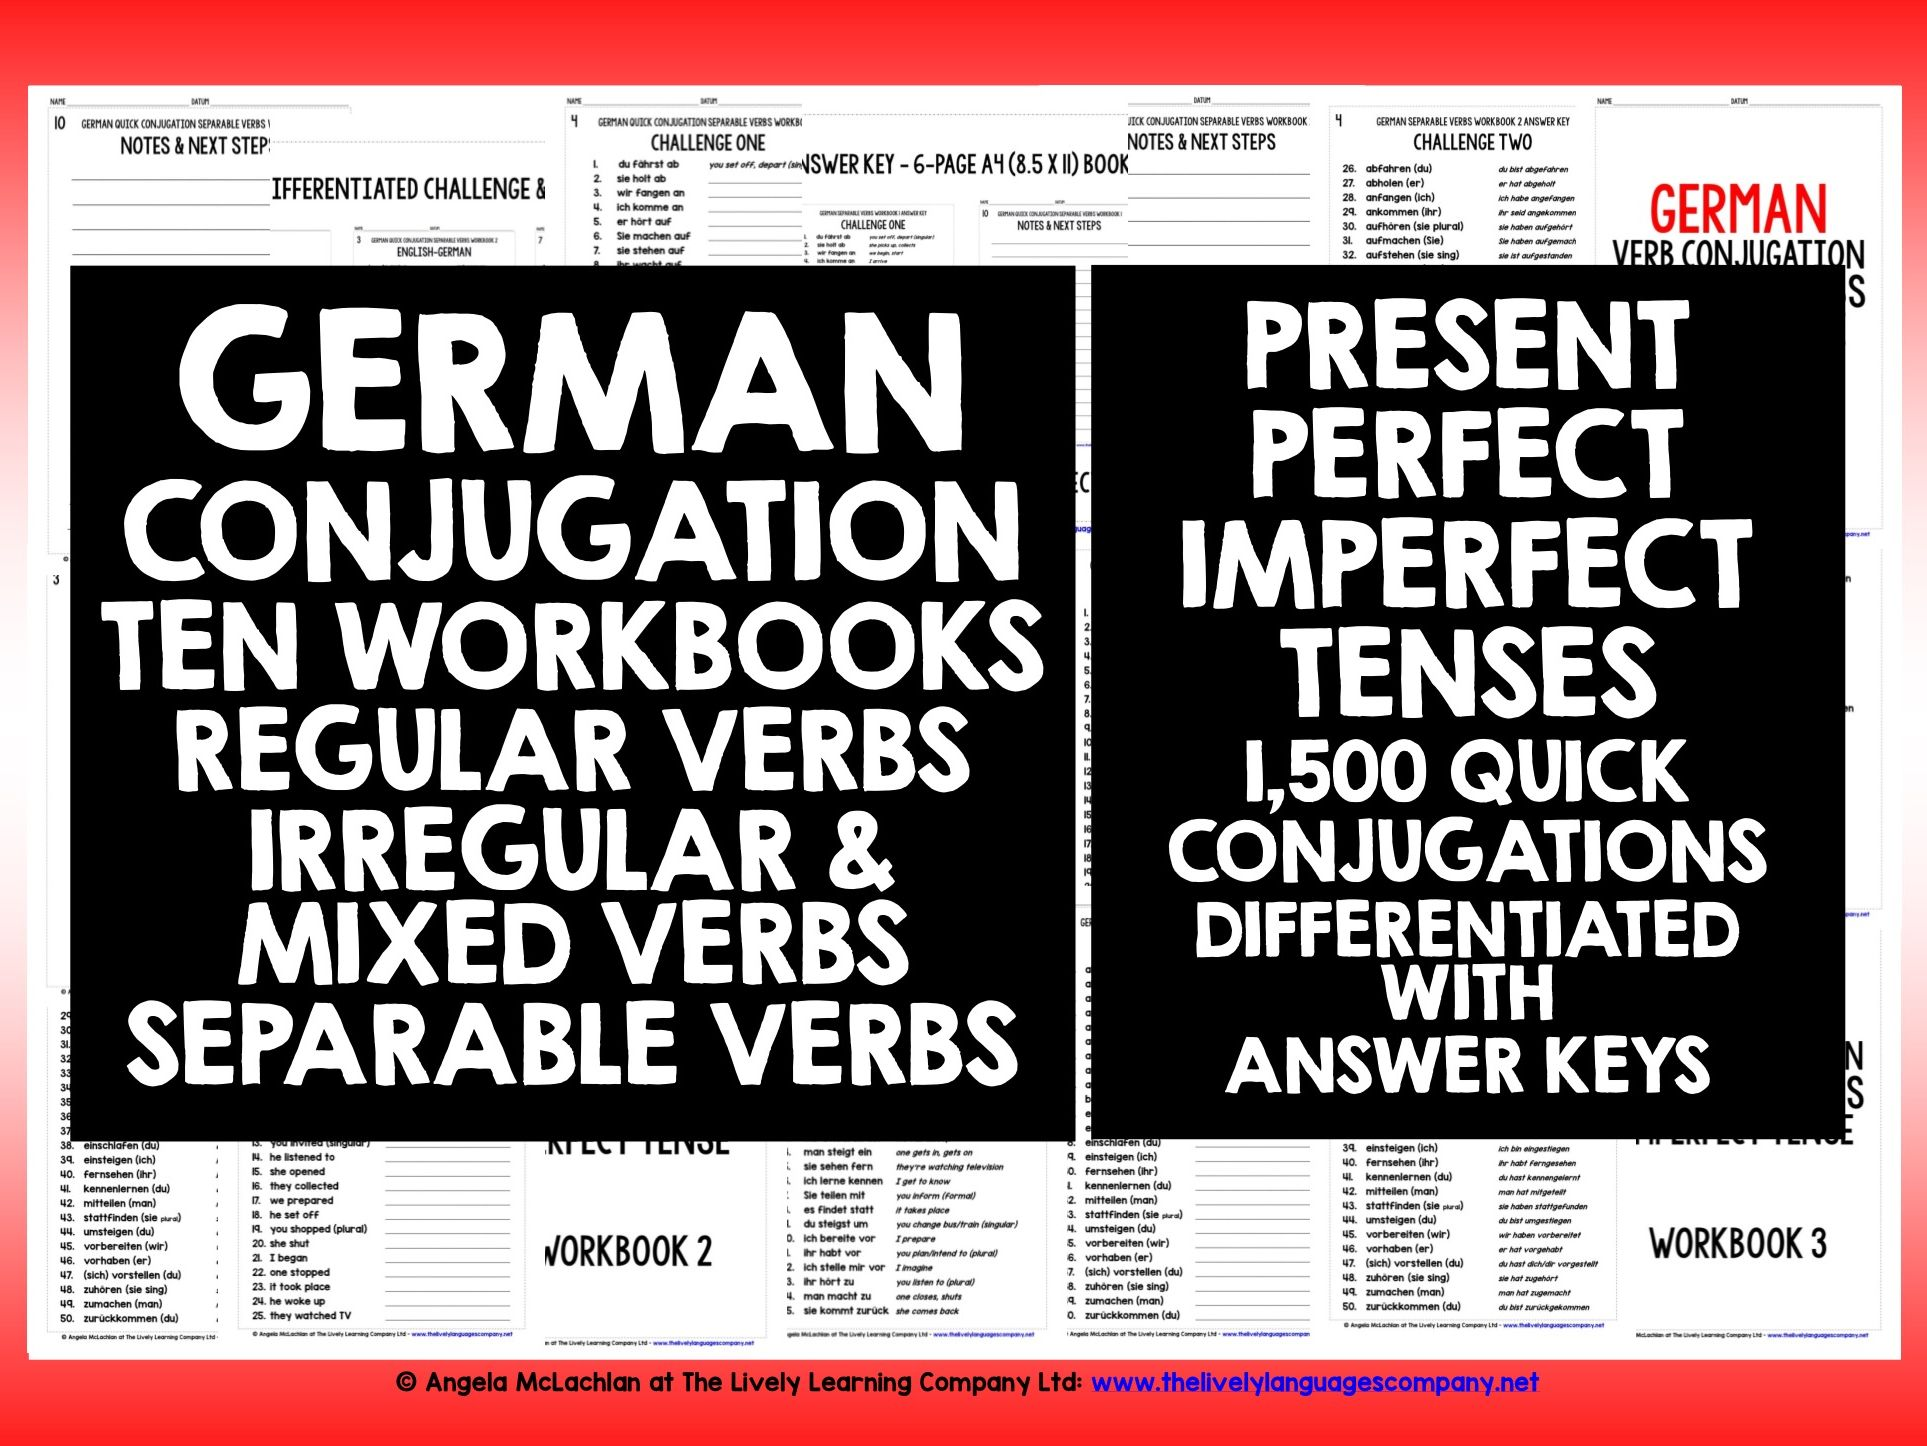 GERMAN VERBS CONJUGATION REVISION #1